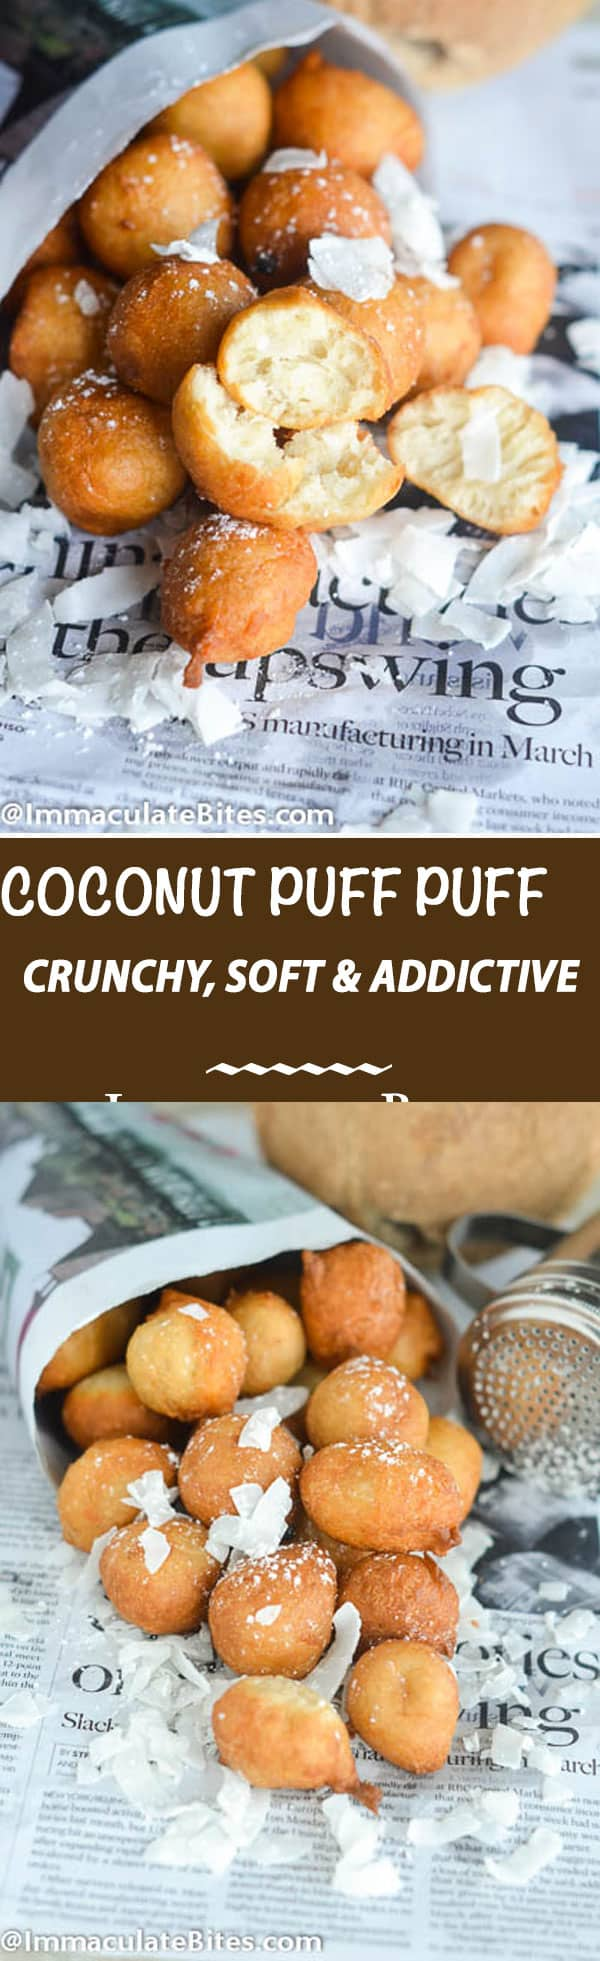 COCONUT-PUFF